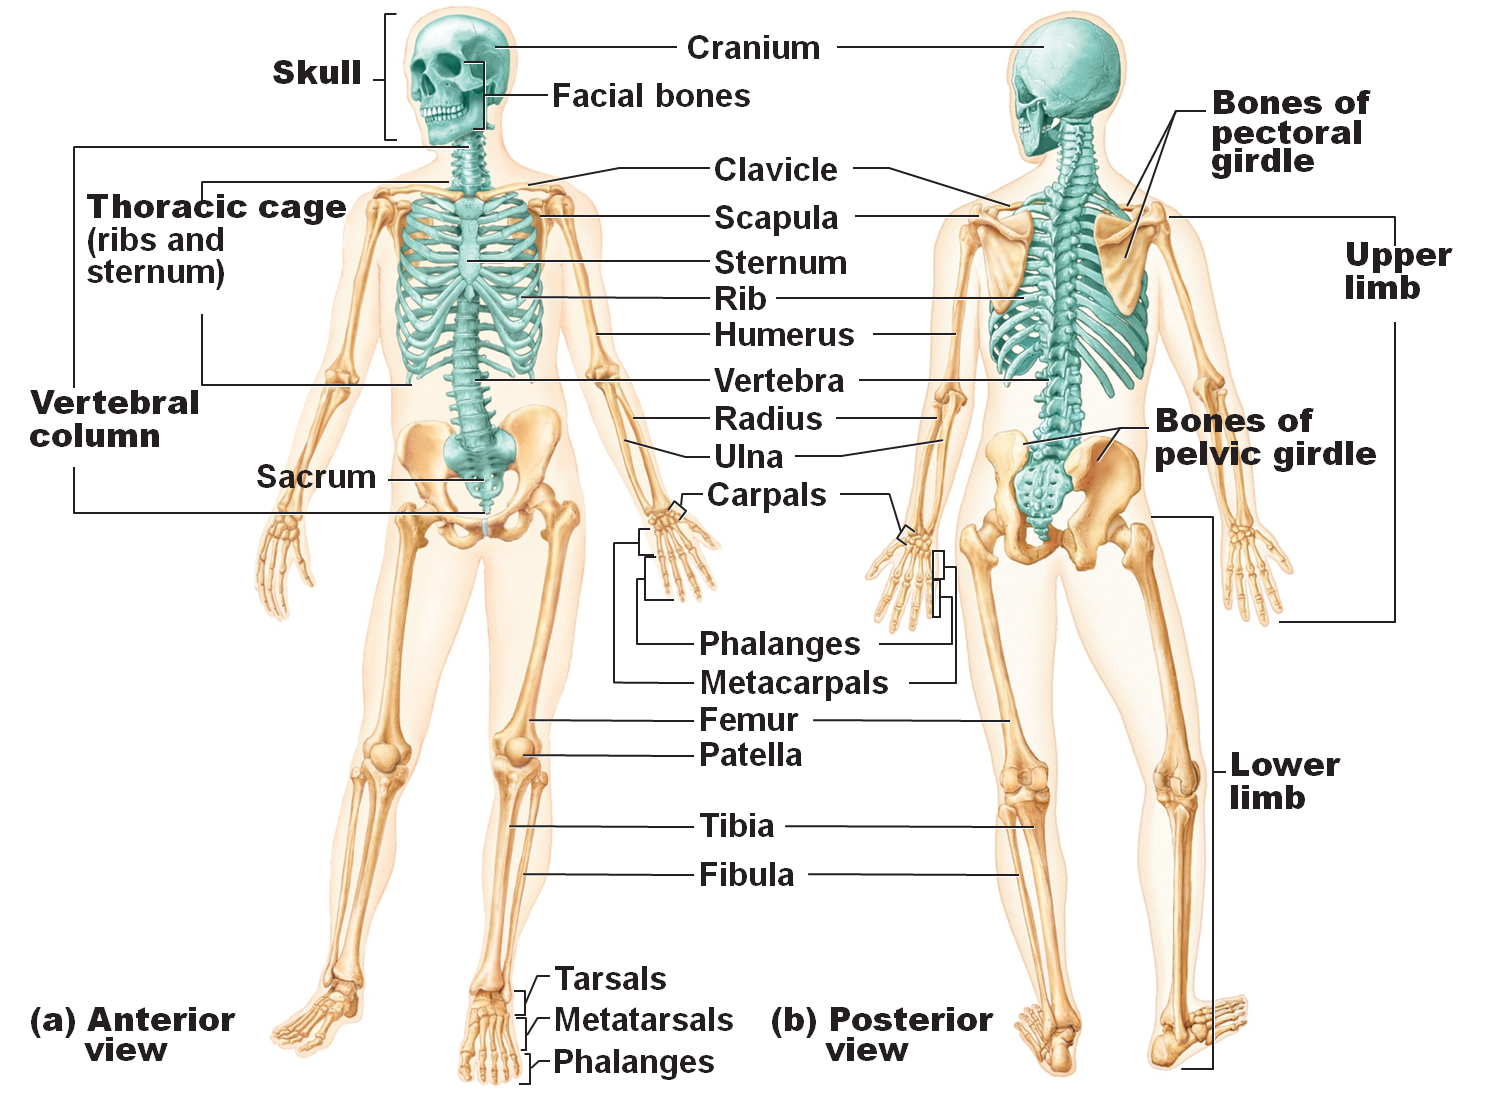 worksheet Axial Skeleton Worksheet 1000 ideas about axial skeleton on pinterest facial bones online study guide for anatomy amp physiology 1 with lehning including cranium hyoid hyoid